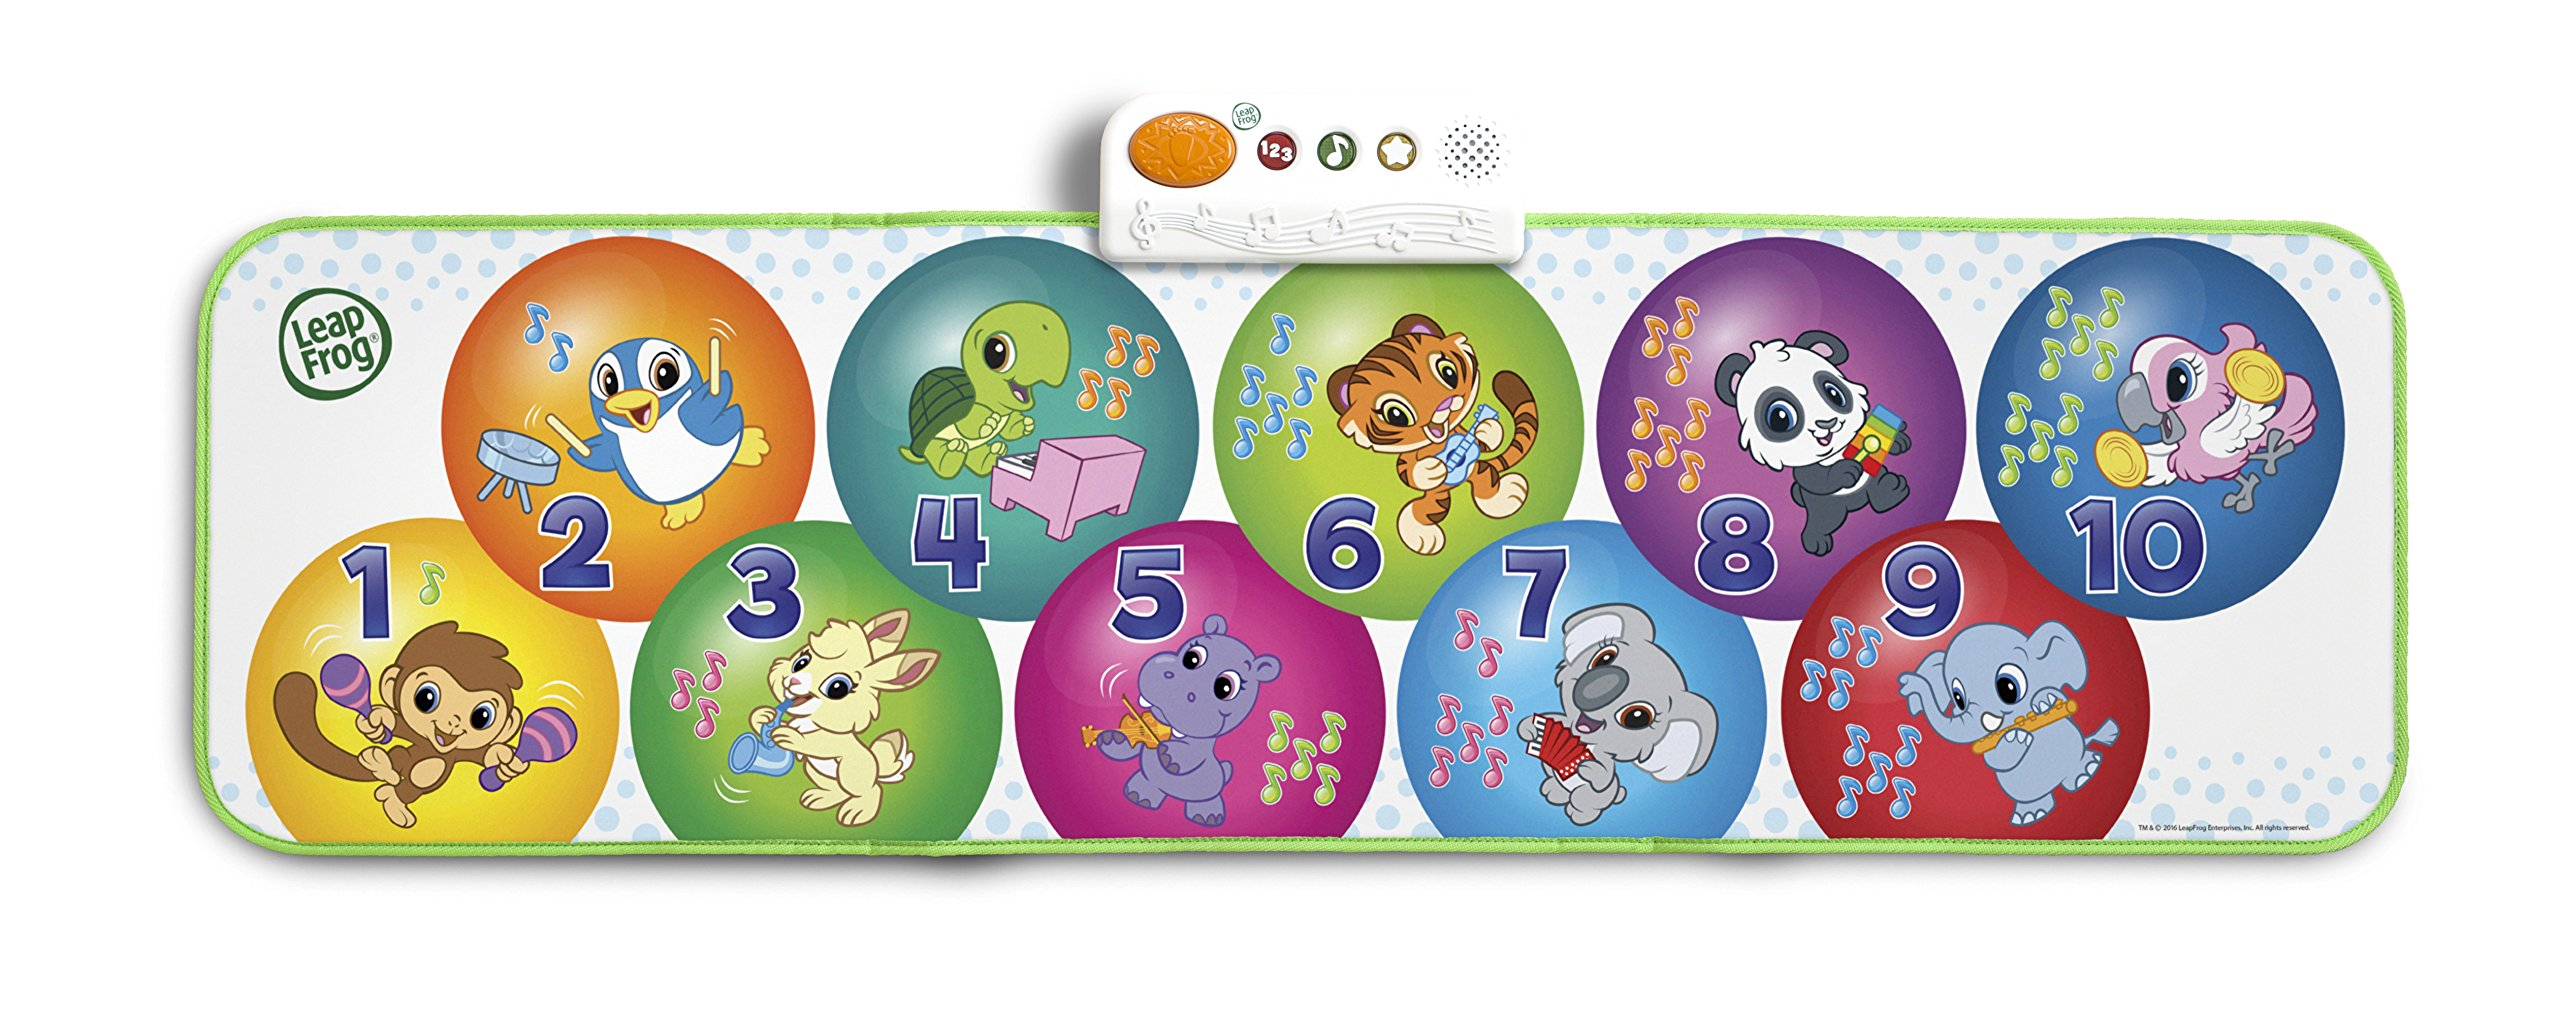 LeapFrog Learn and Groove Musical Mat, Green by LeapFrog (Image #5)